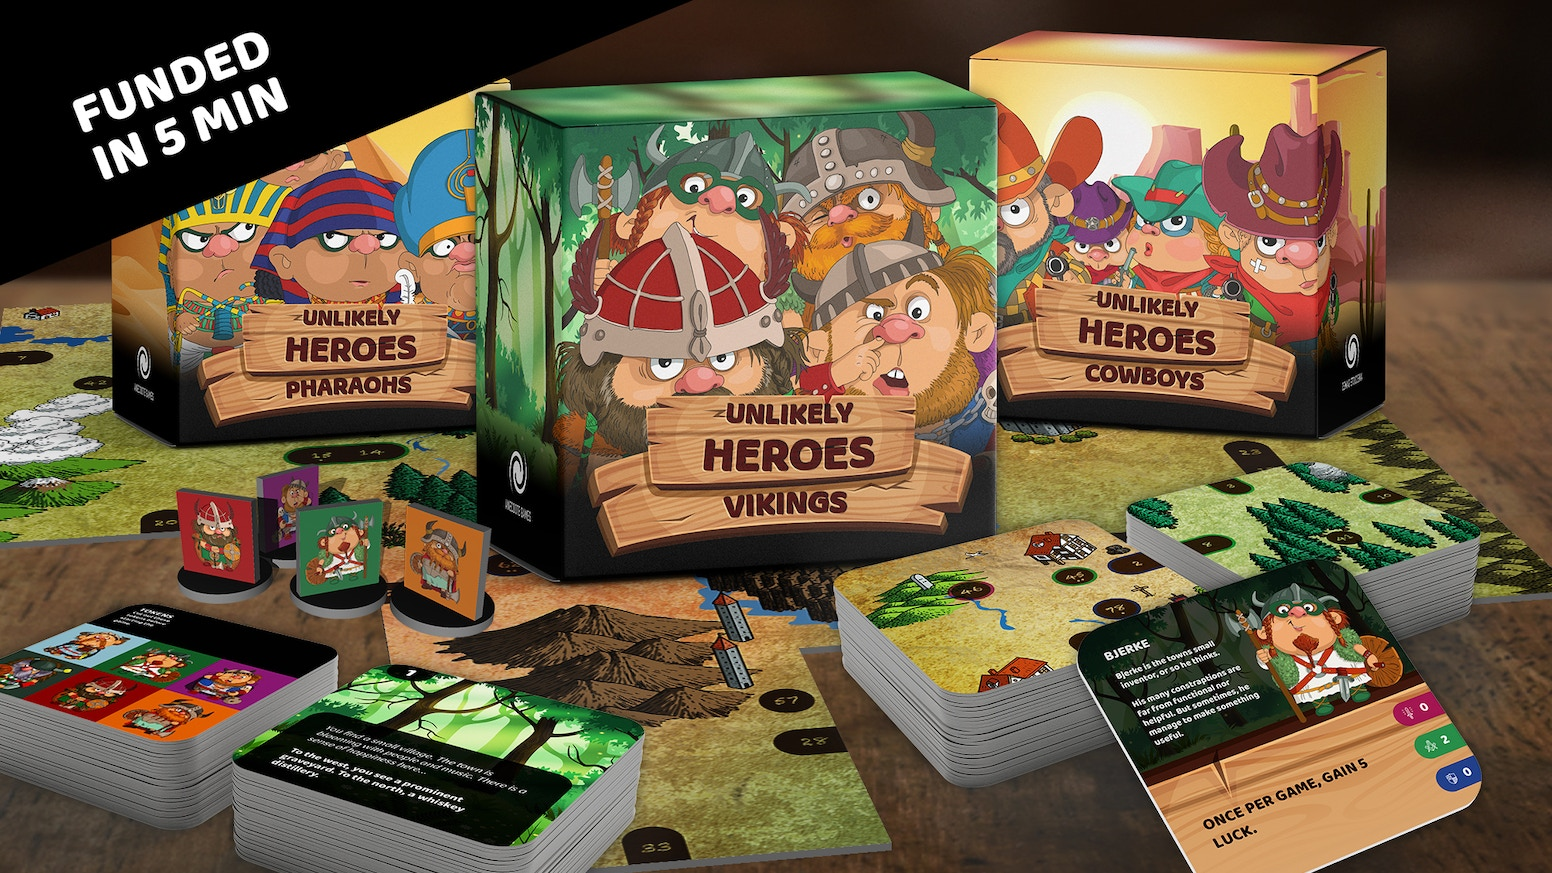 Epic narrative adventure board game for 1-4 players. Explore the map, find weapons, slay monsters and save the day!